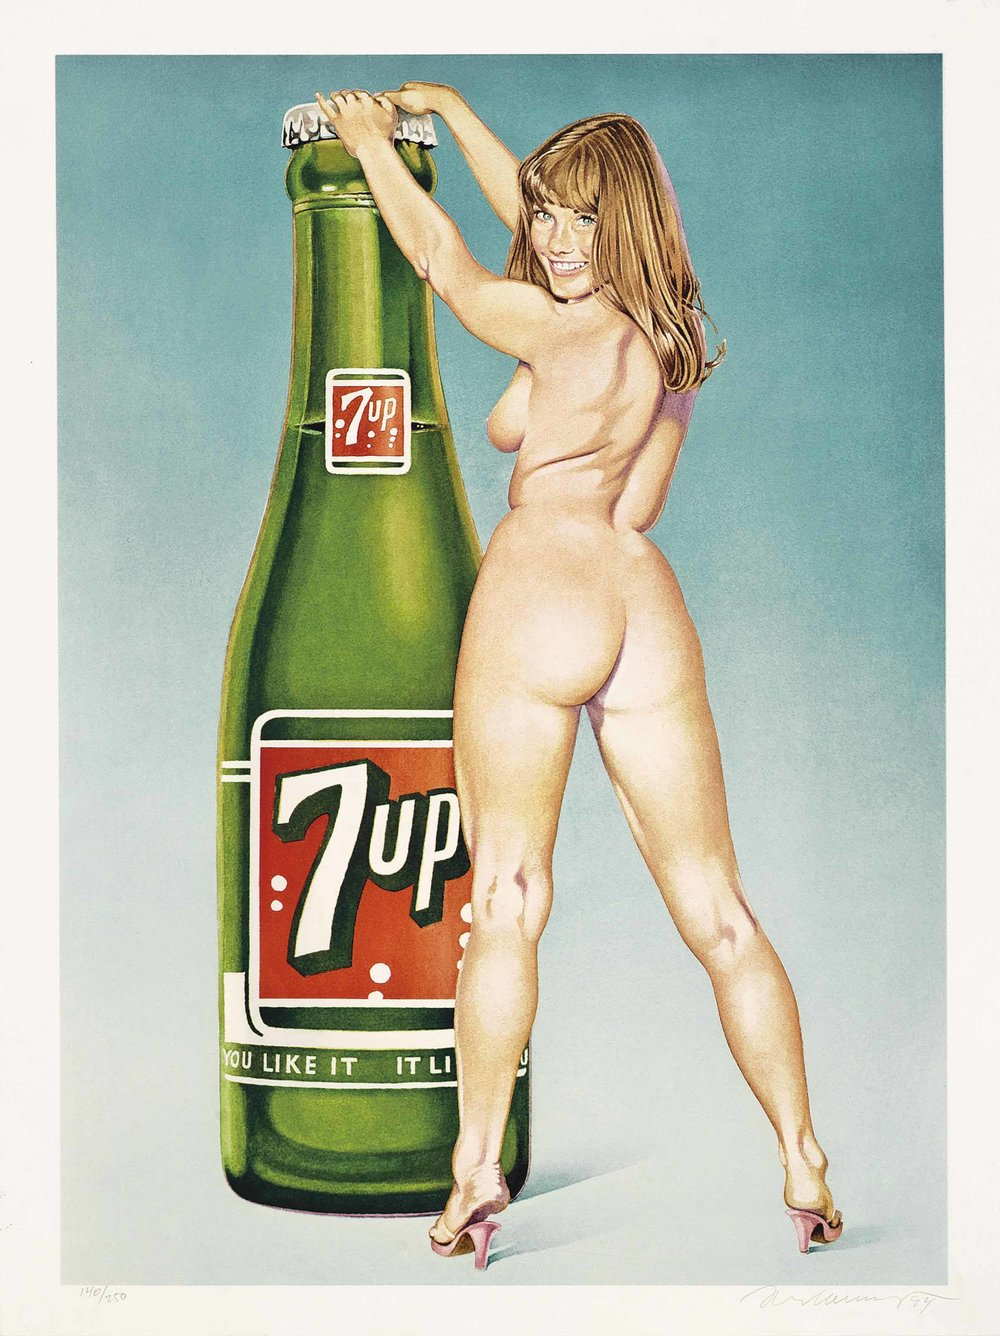 """You Like it - it Likes you (7Up),"" 1994."